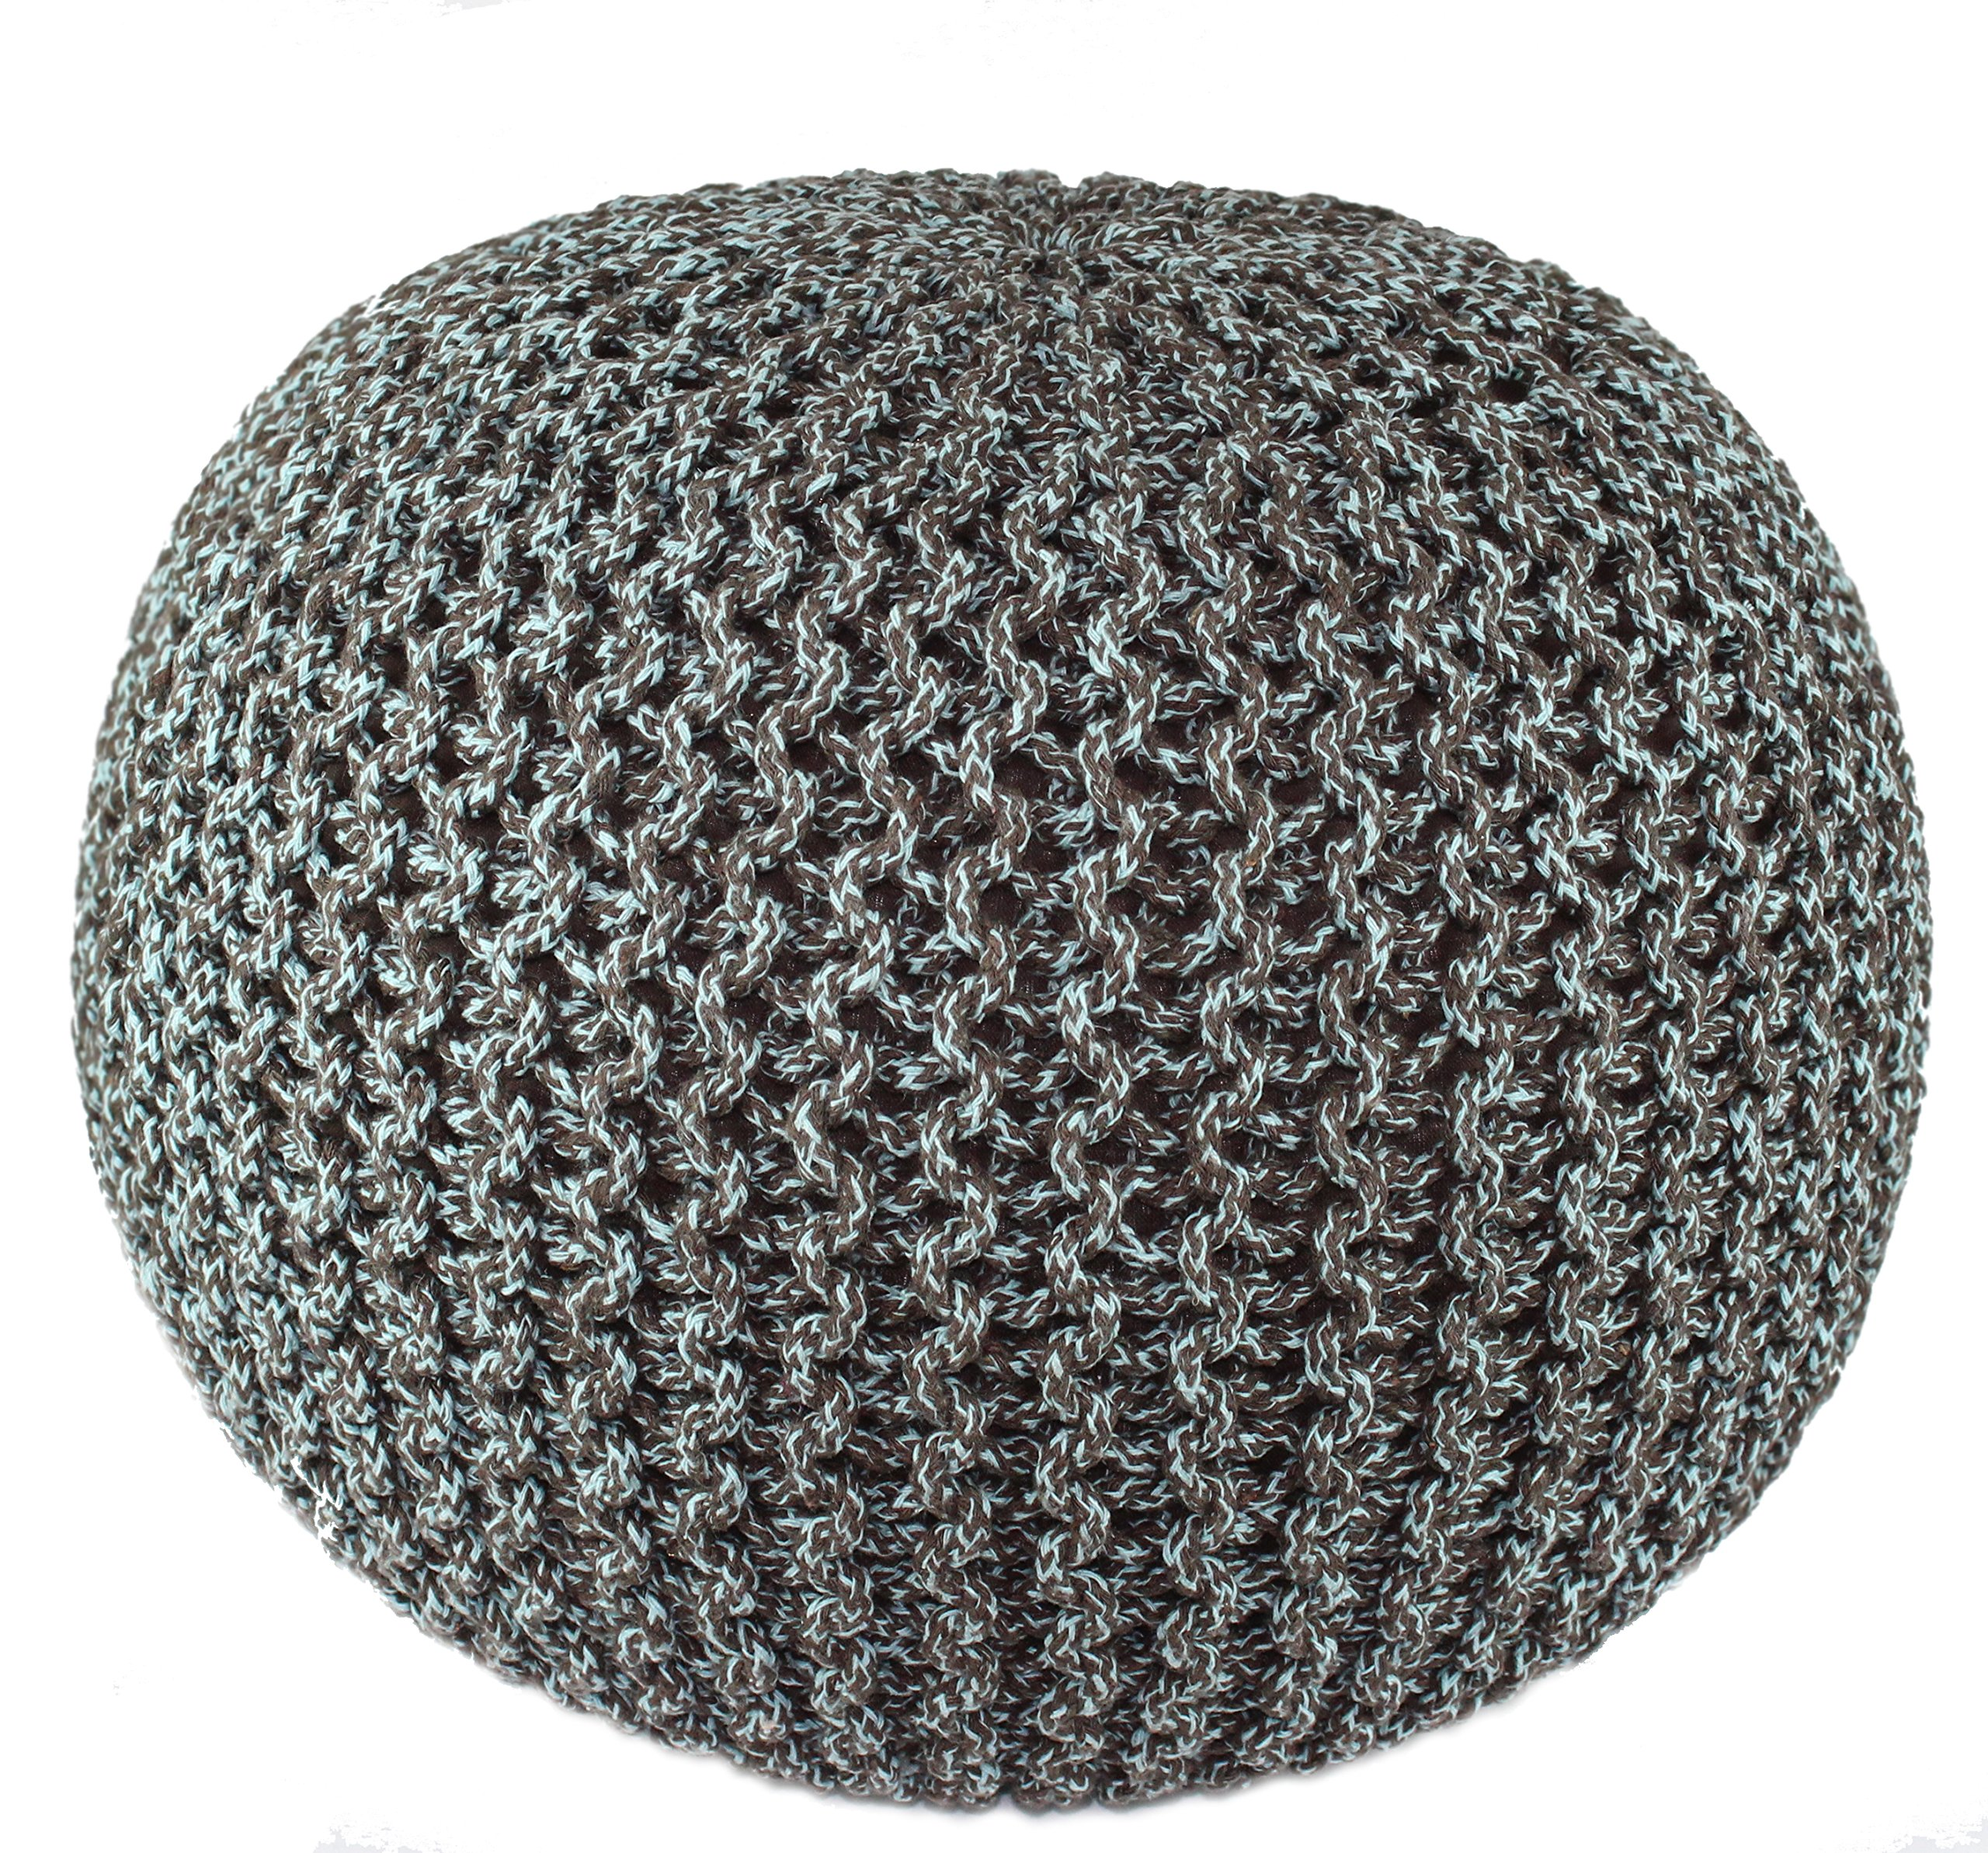 Cotton Craft - Hand Knitted Cable Style Tweed Dori Pouf - Spa/Chocolate - Floor Ottoman - 100% Cotton Braid Cord - Handmade & Hand stitched - Truly one of a kind seating - 20 Dia x 14 High